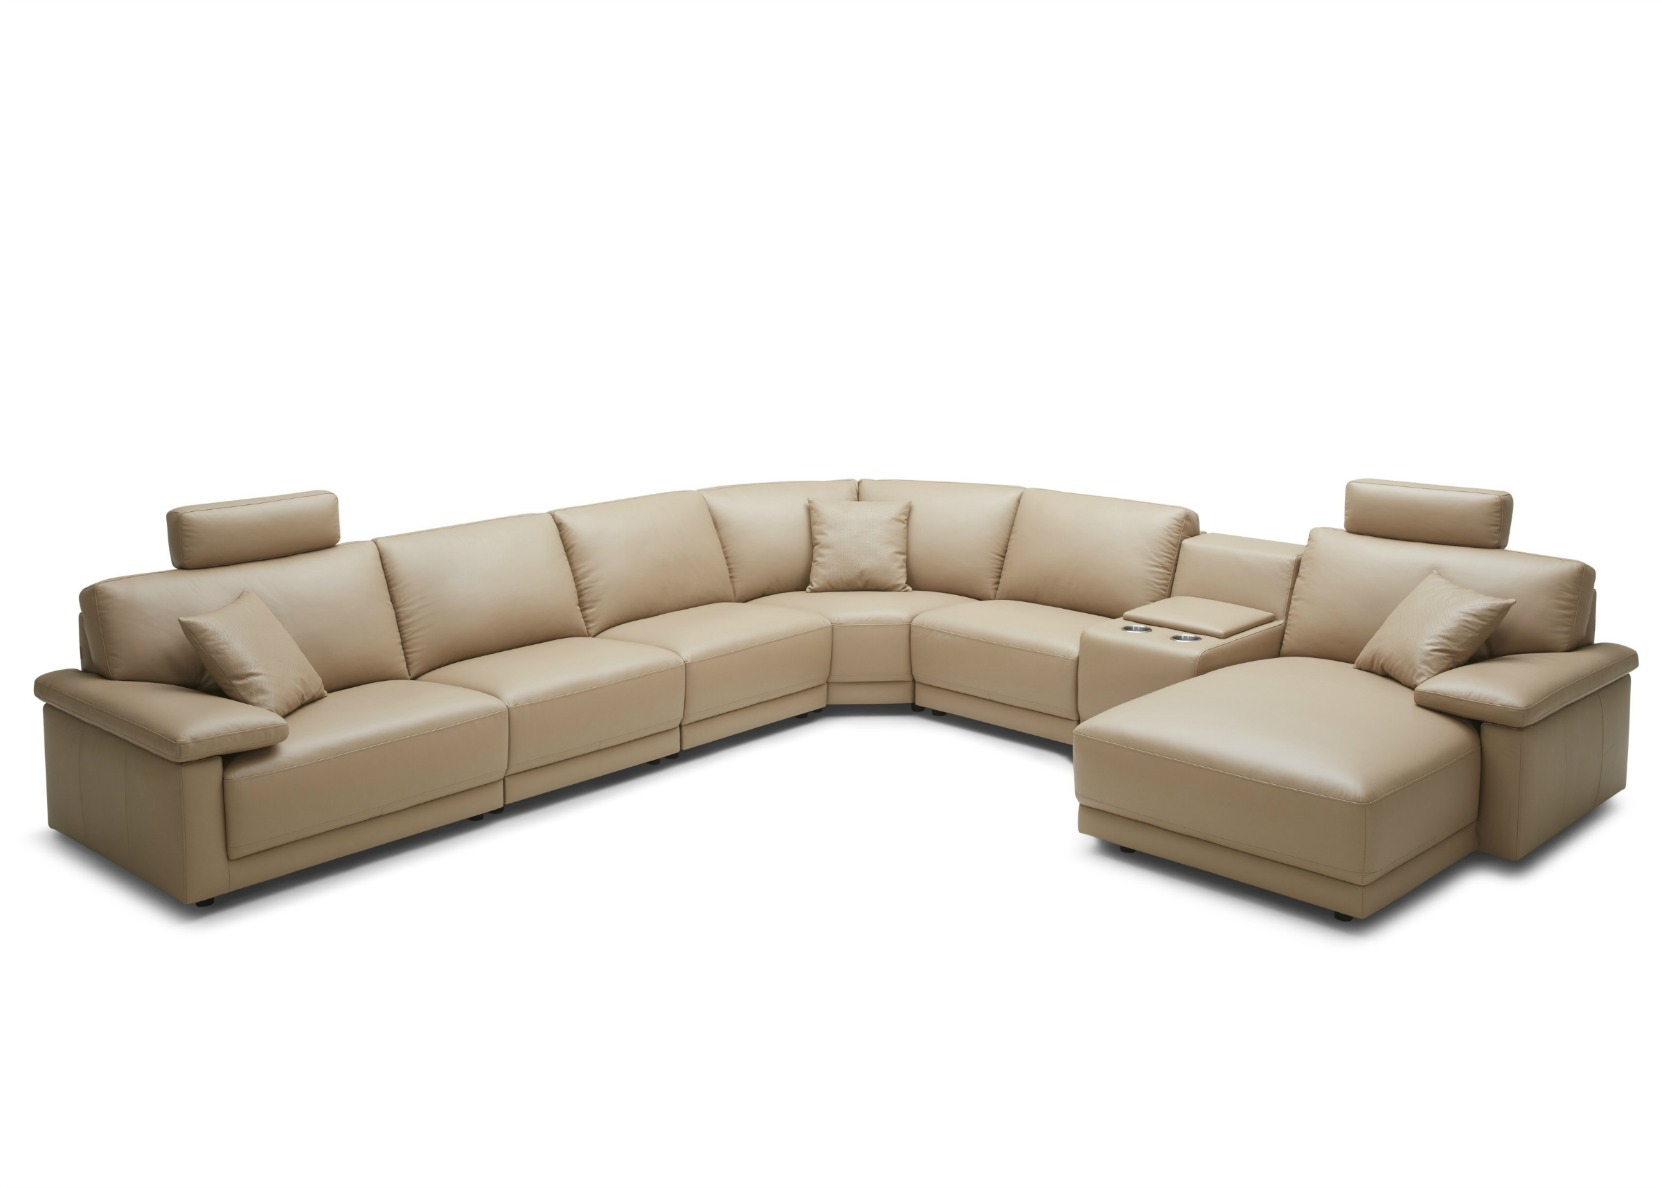 Alpha Sofa Group Modular L Shape Group Sofa In Leather Not Just Brown